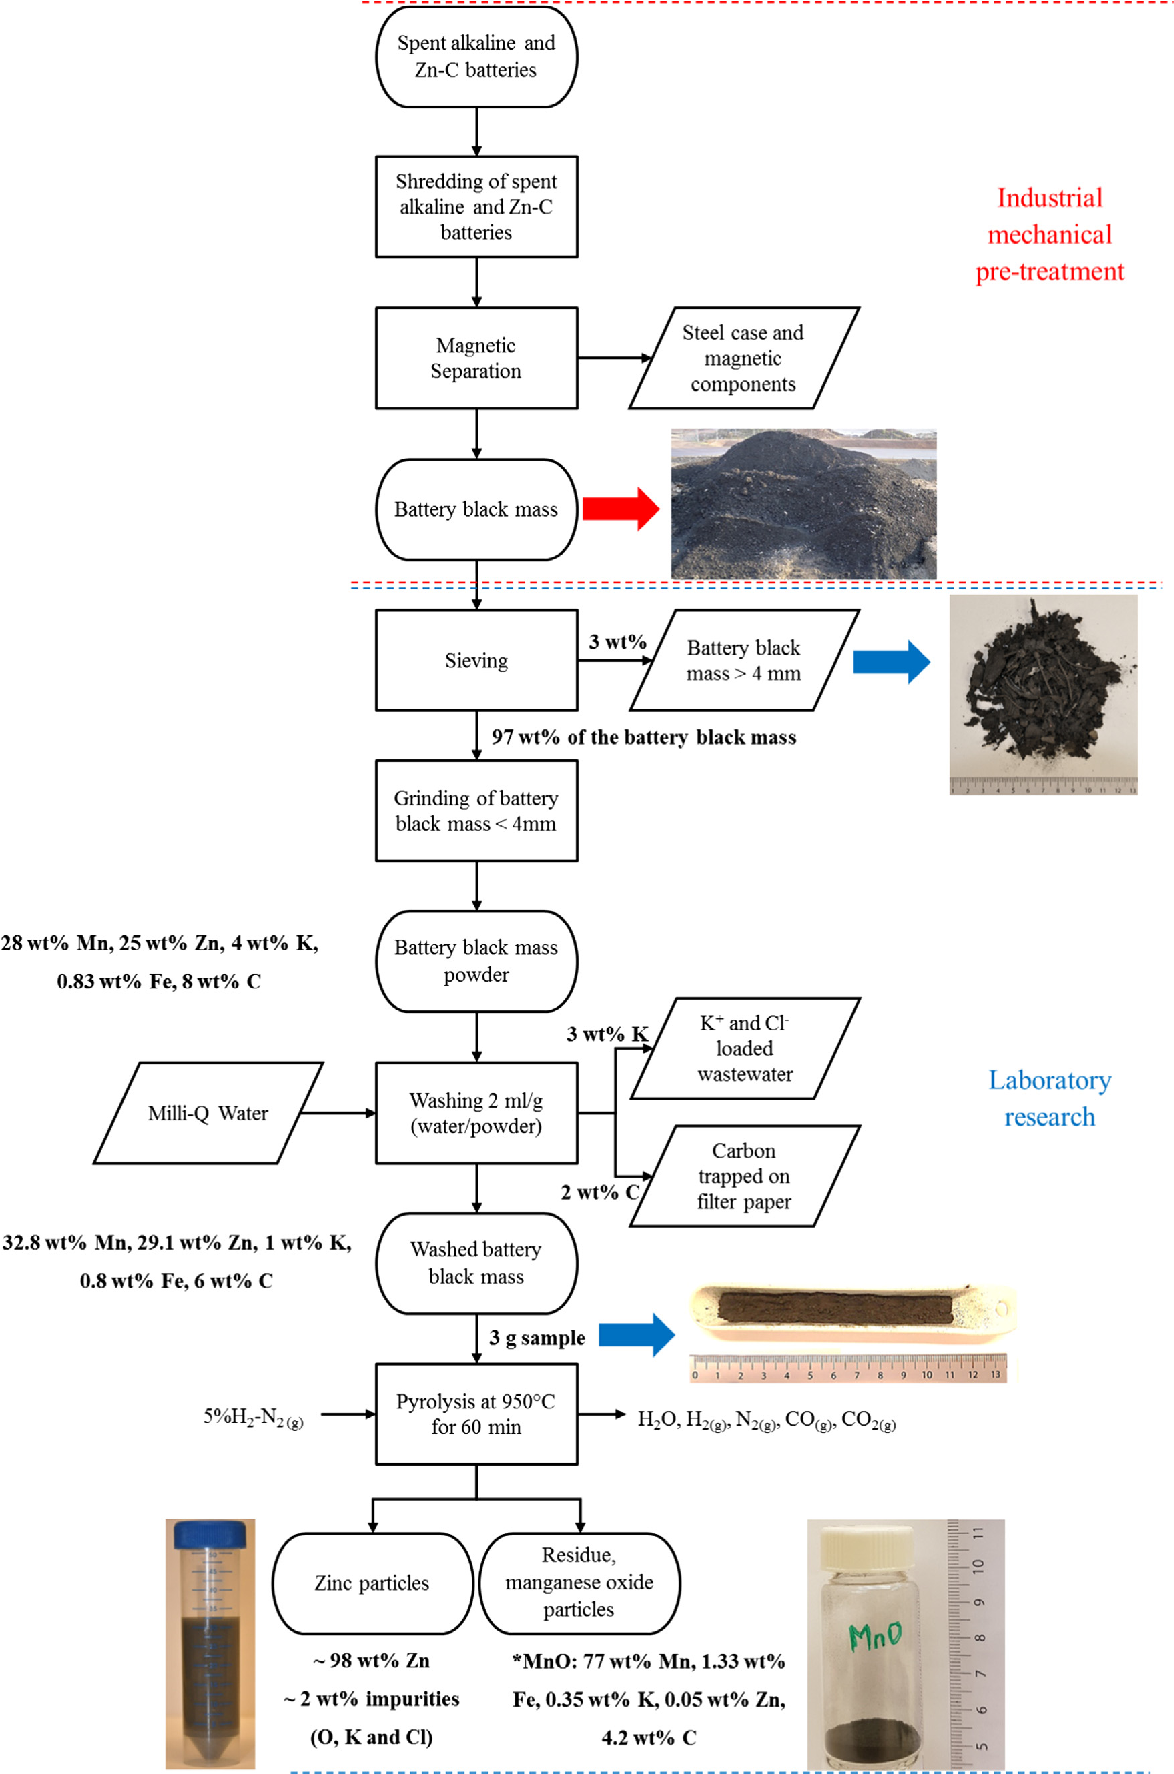 zinc process flow diagram figure 10 from investigation of zinc recovery by hydrogen  zinc recovery